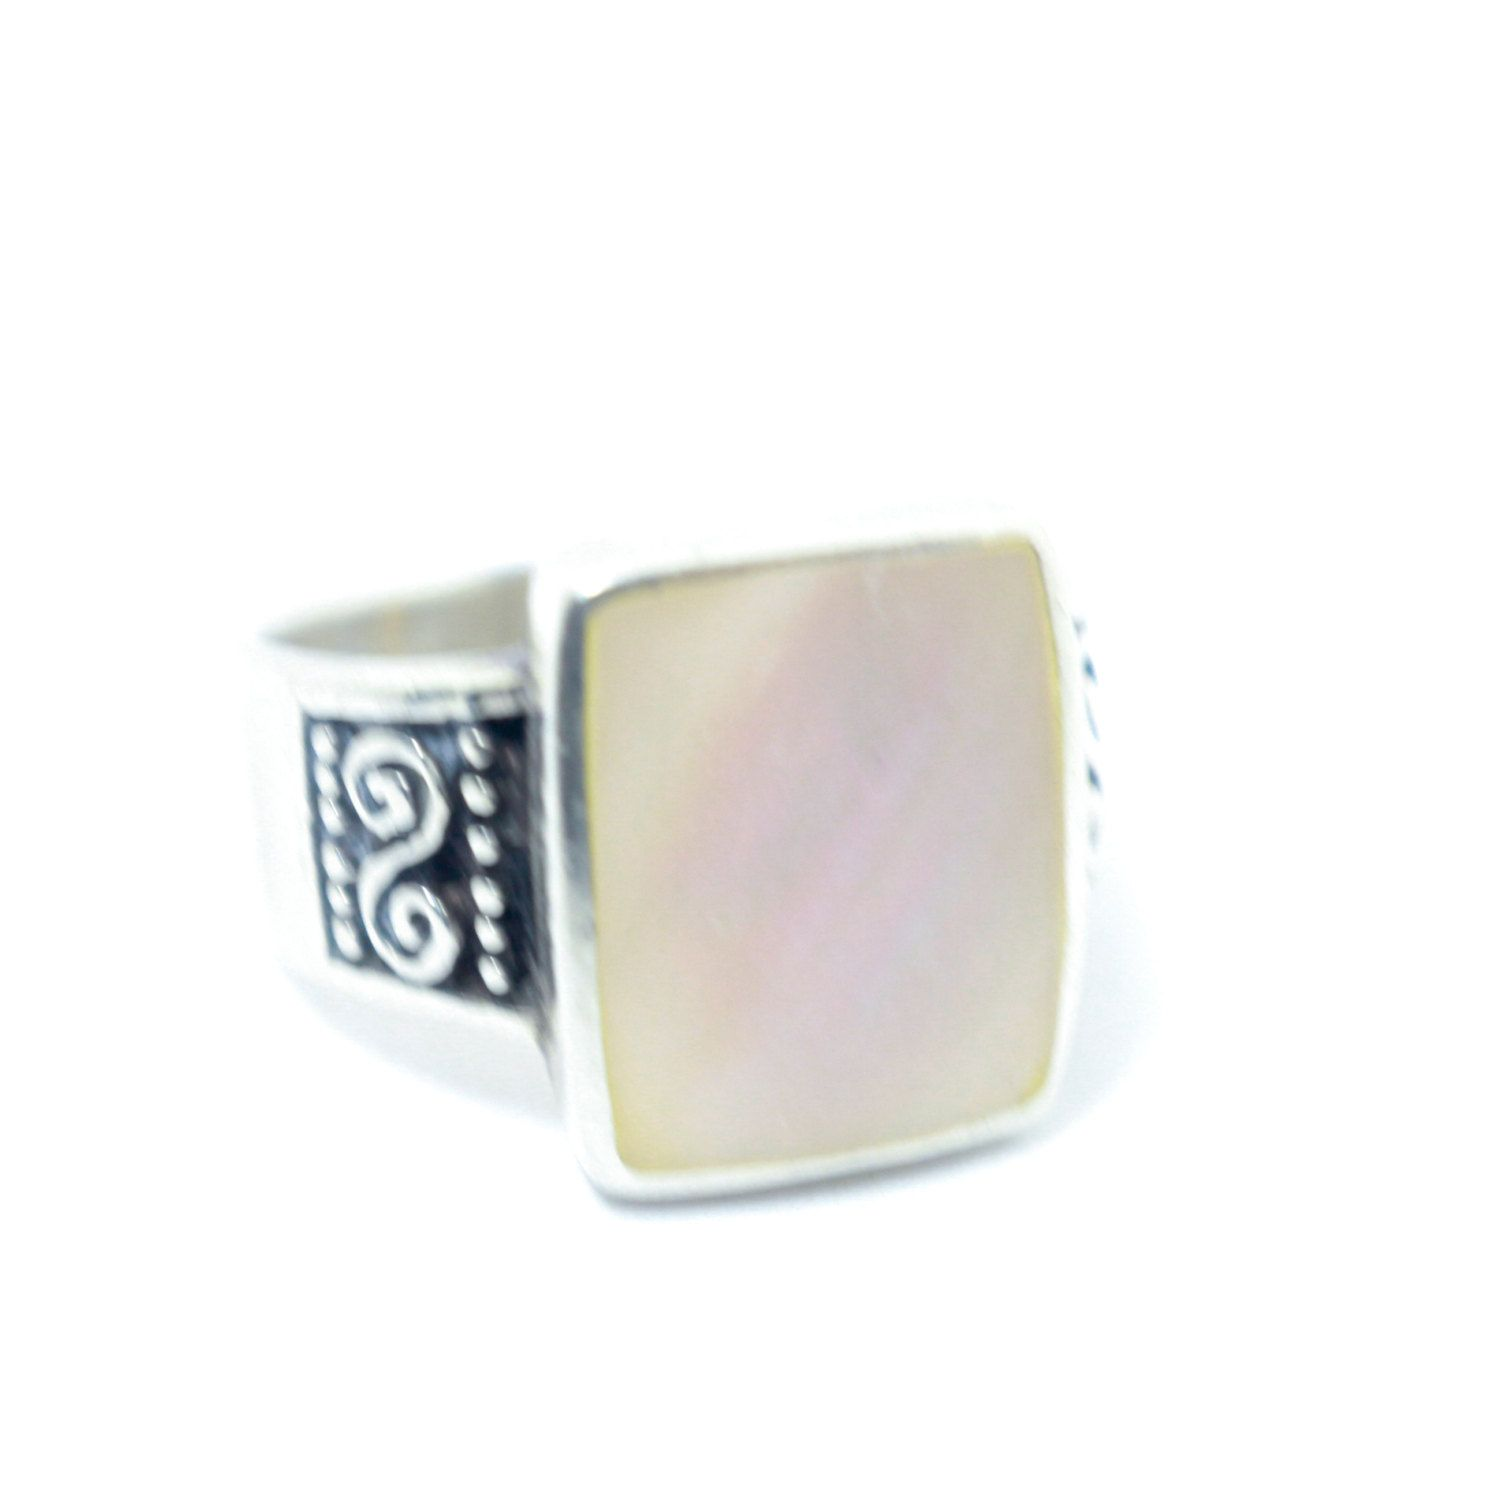 Shimmery Pale Pink Mother of Pearl and Silver Ring with Sterling Silver Details On the Band and Classic Southwestern Silver // Size: 7